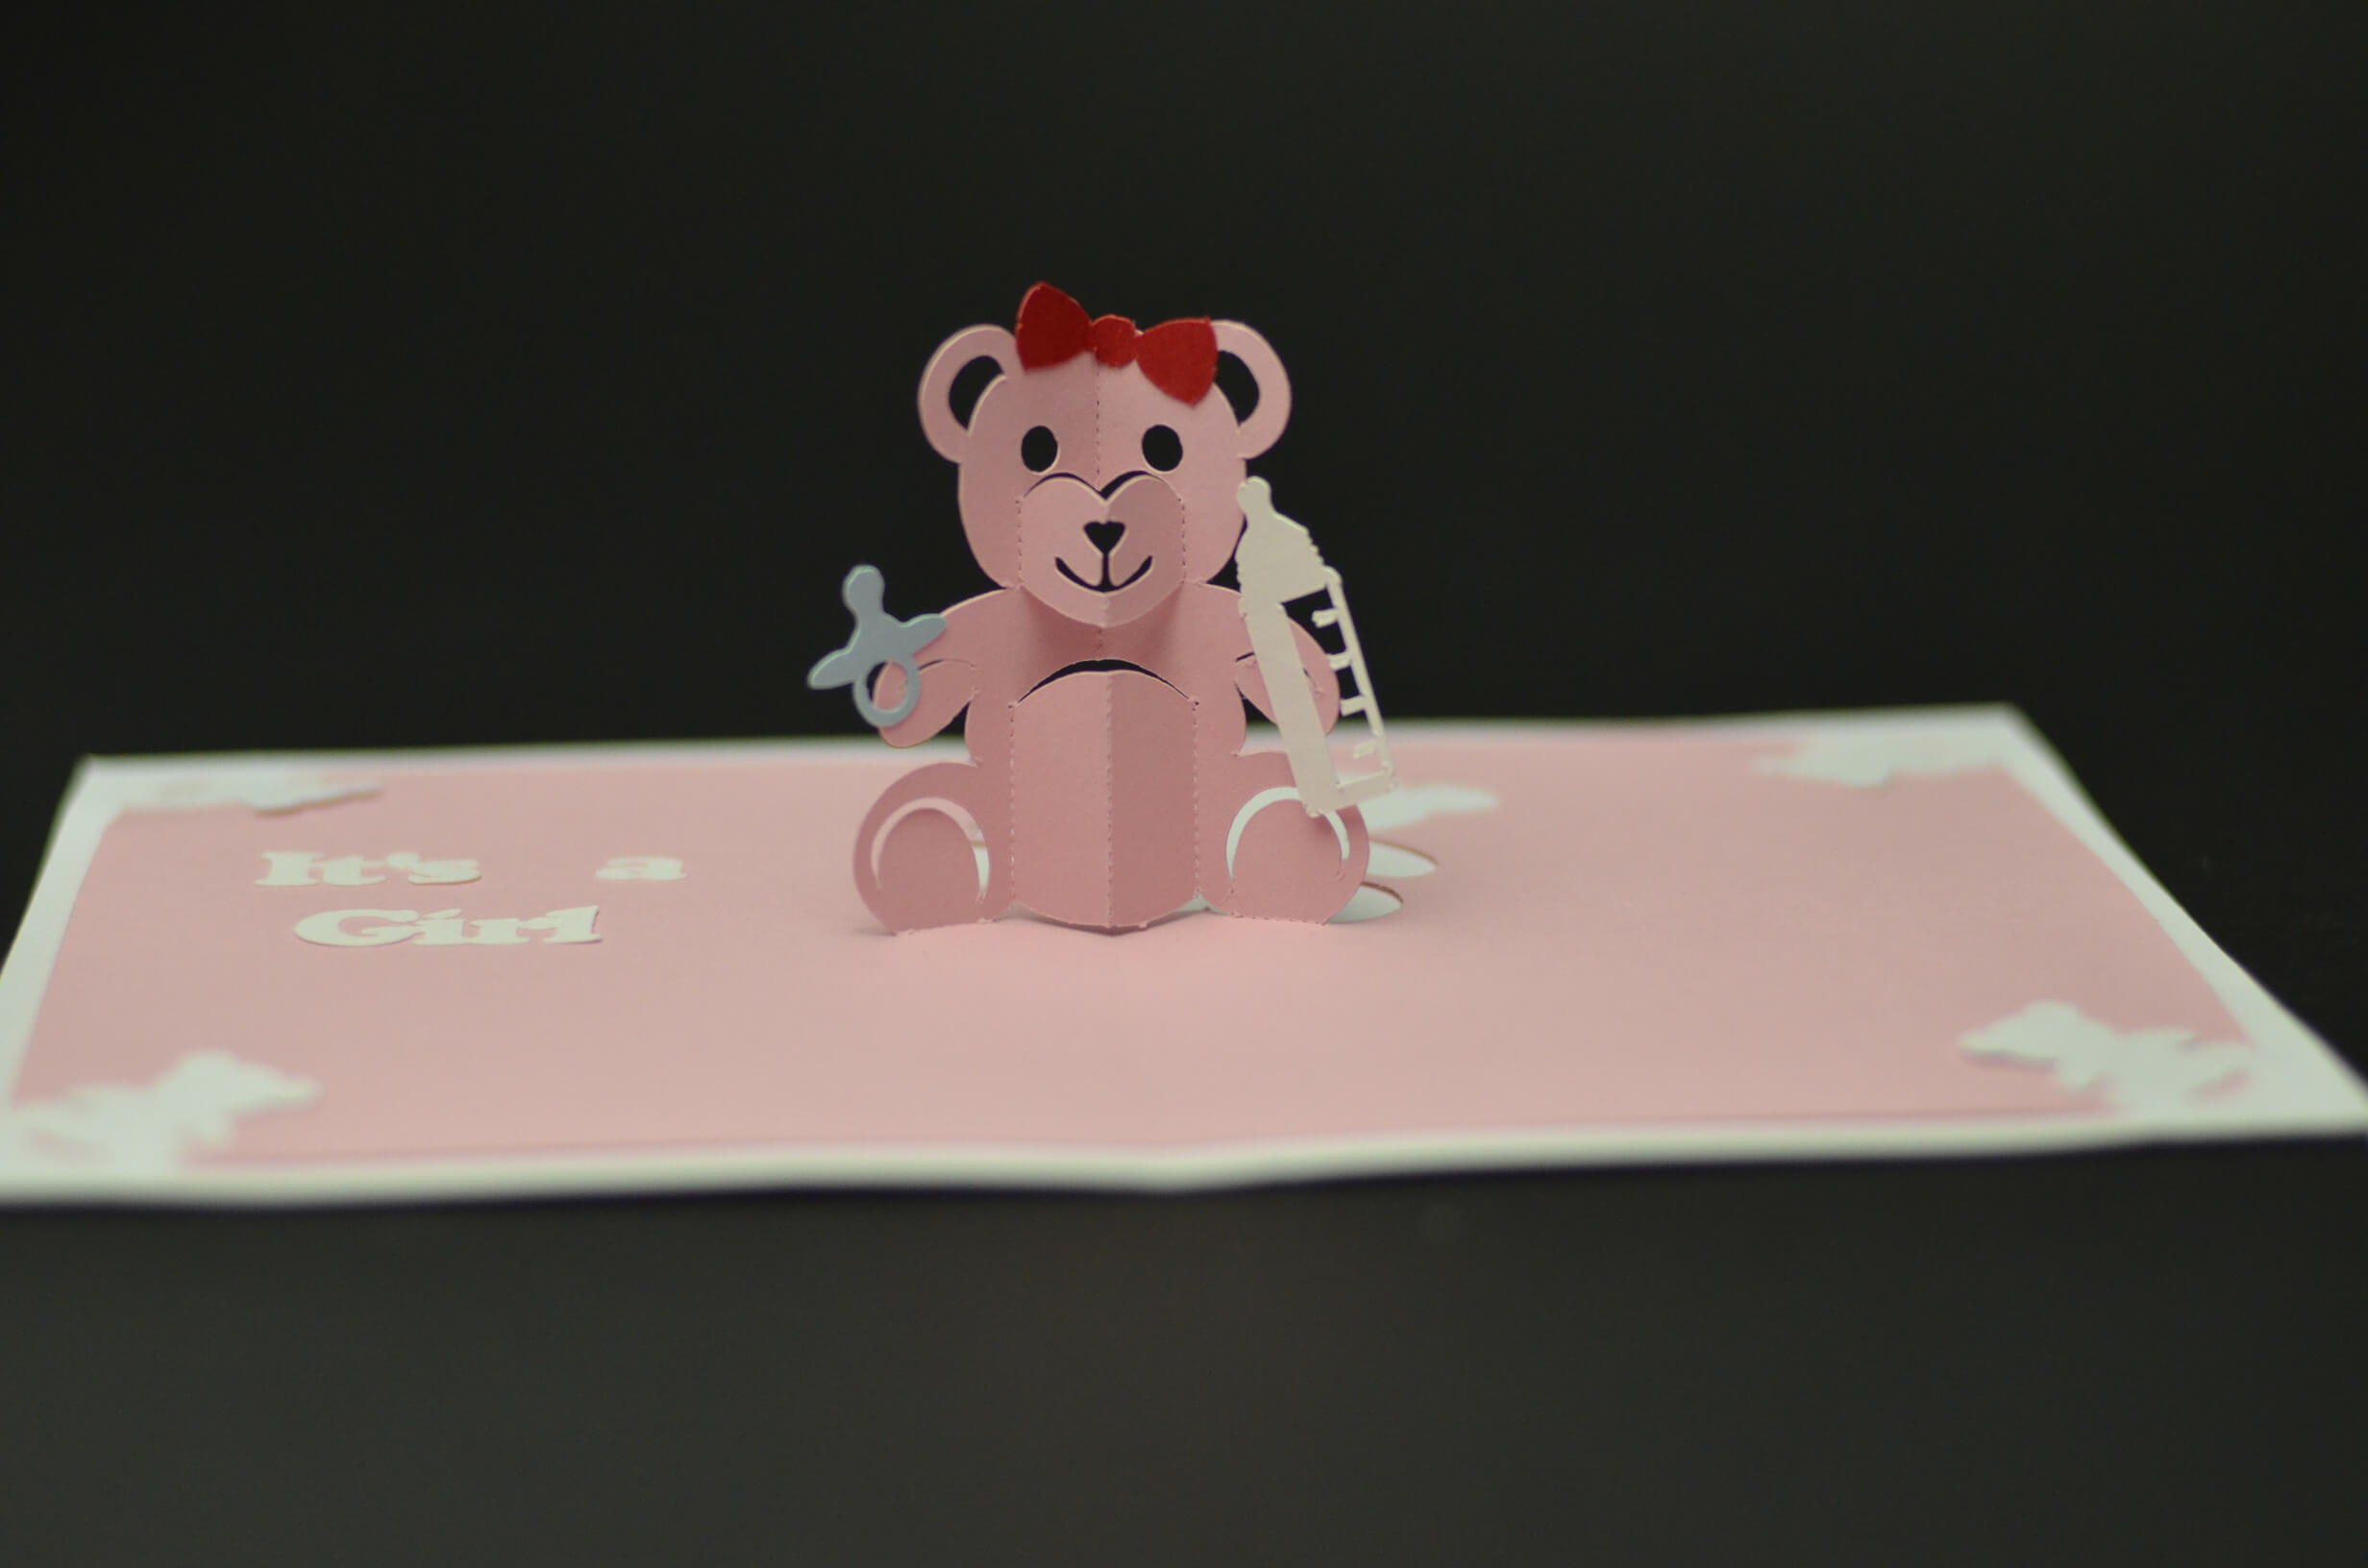 Teddy Bear Pop Up Card: Tutorial And Template - Creative Pop with regard to Teddy Bear Pop Up Card Template Free